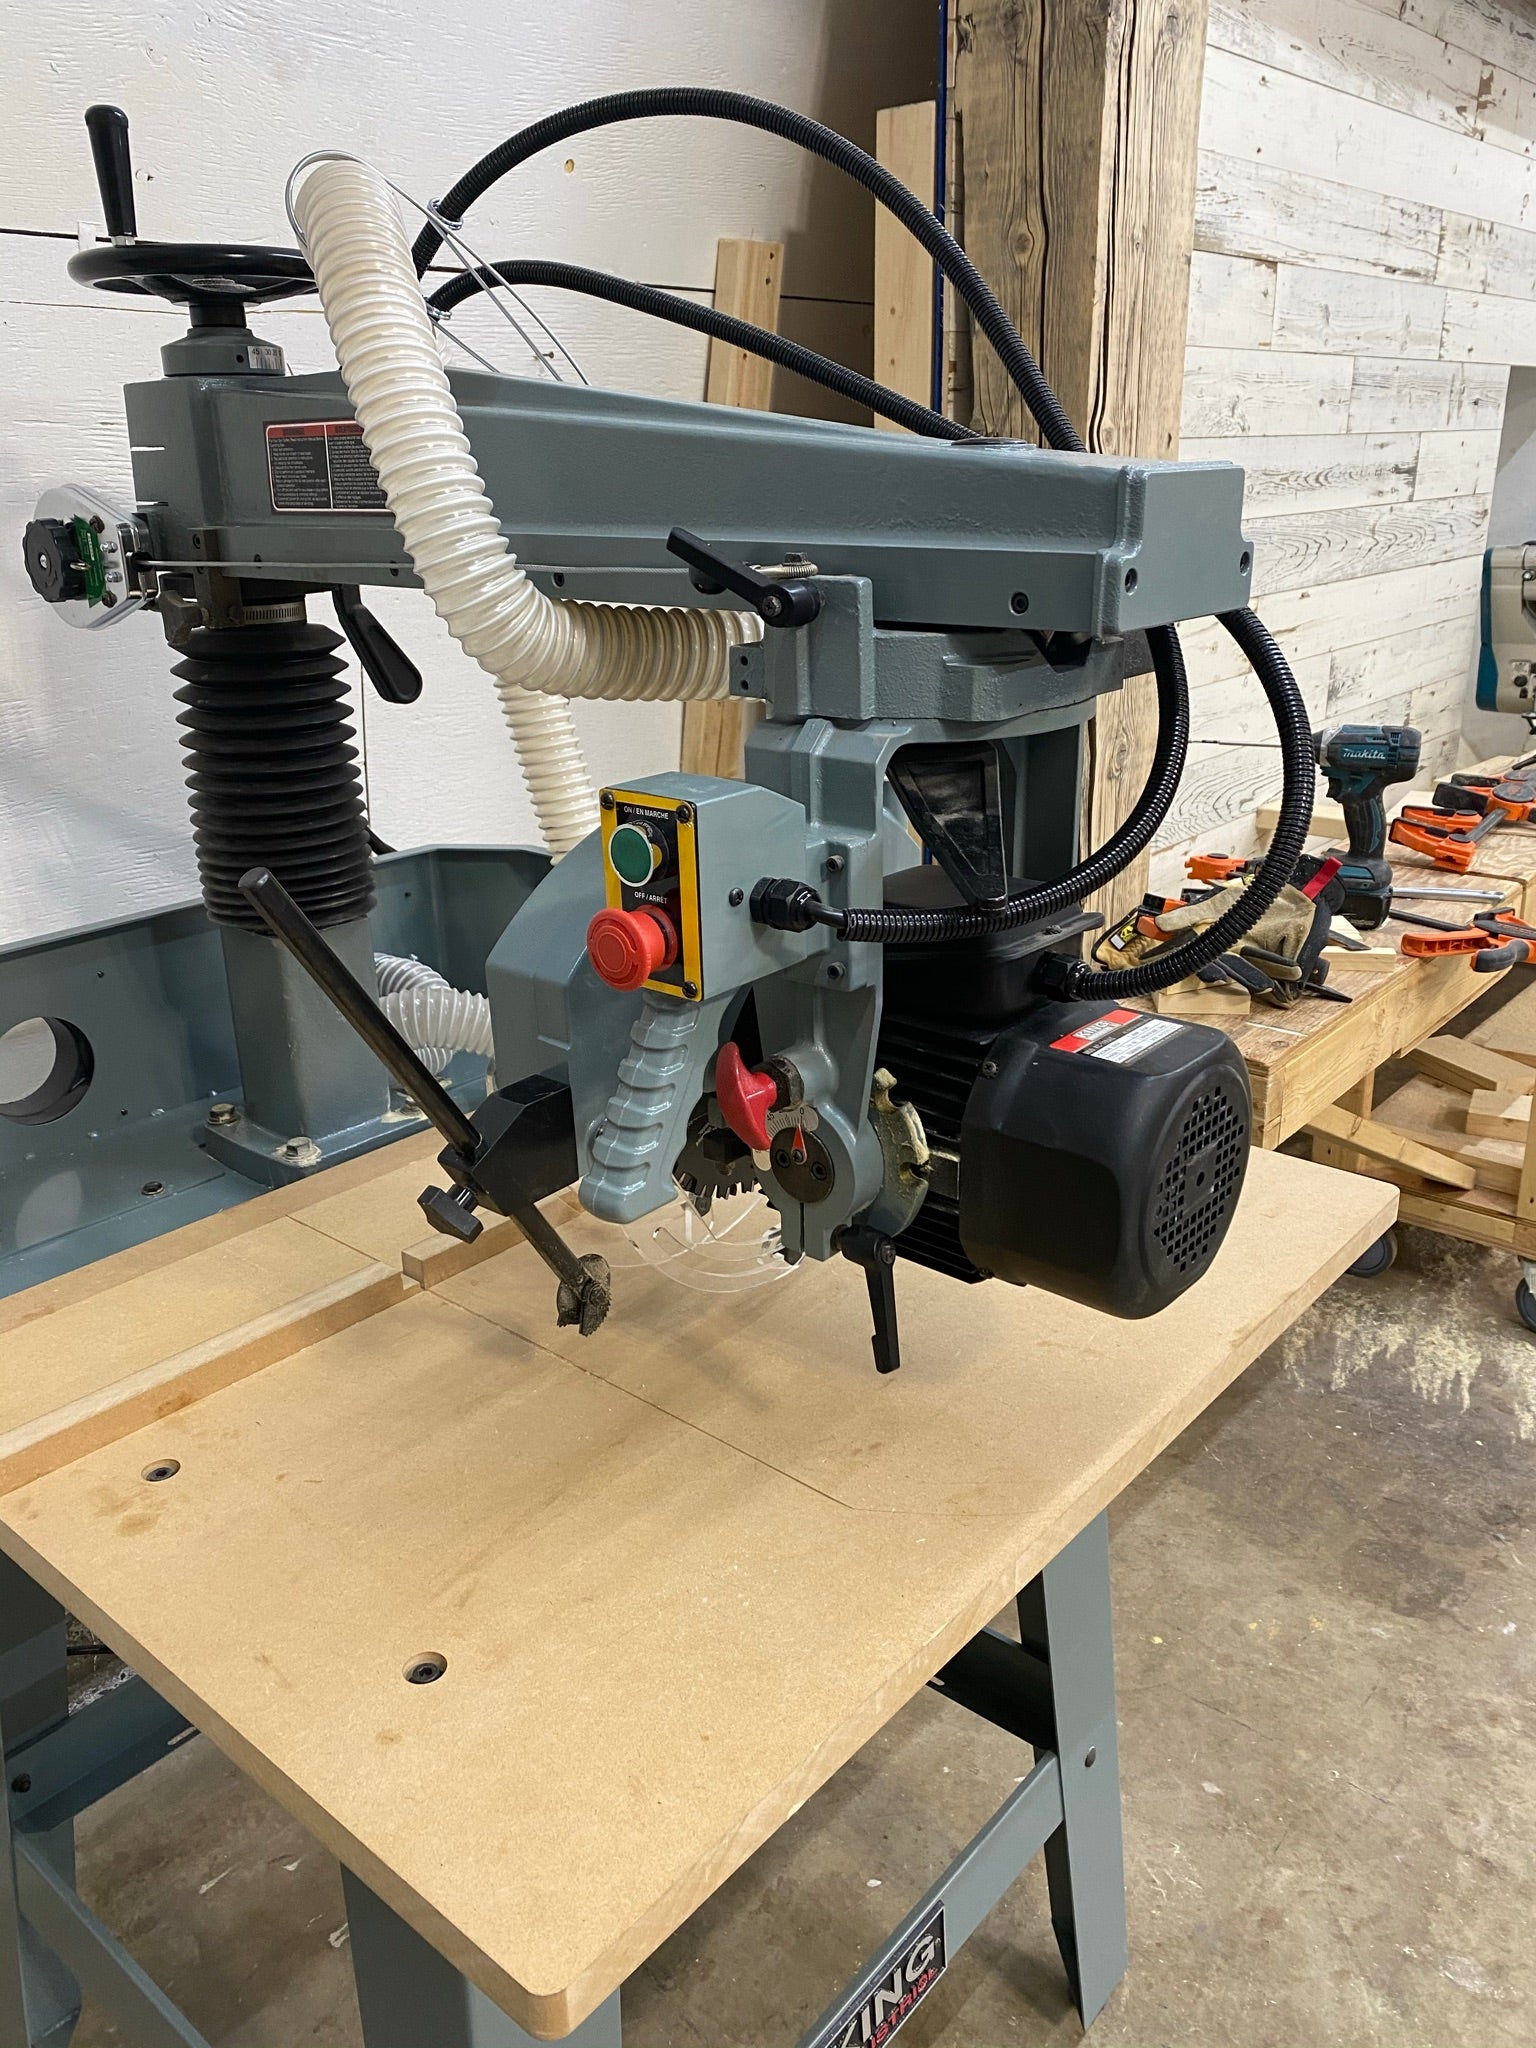 Radial Arm Saw turned